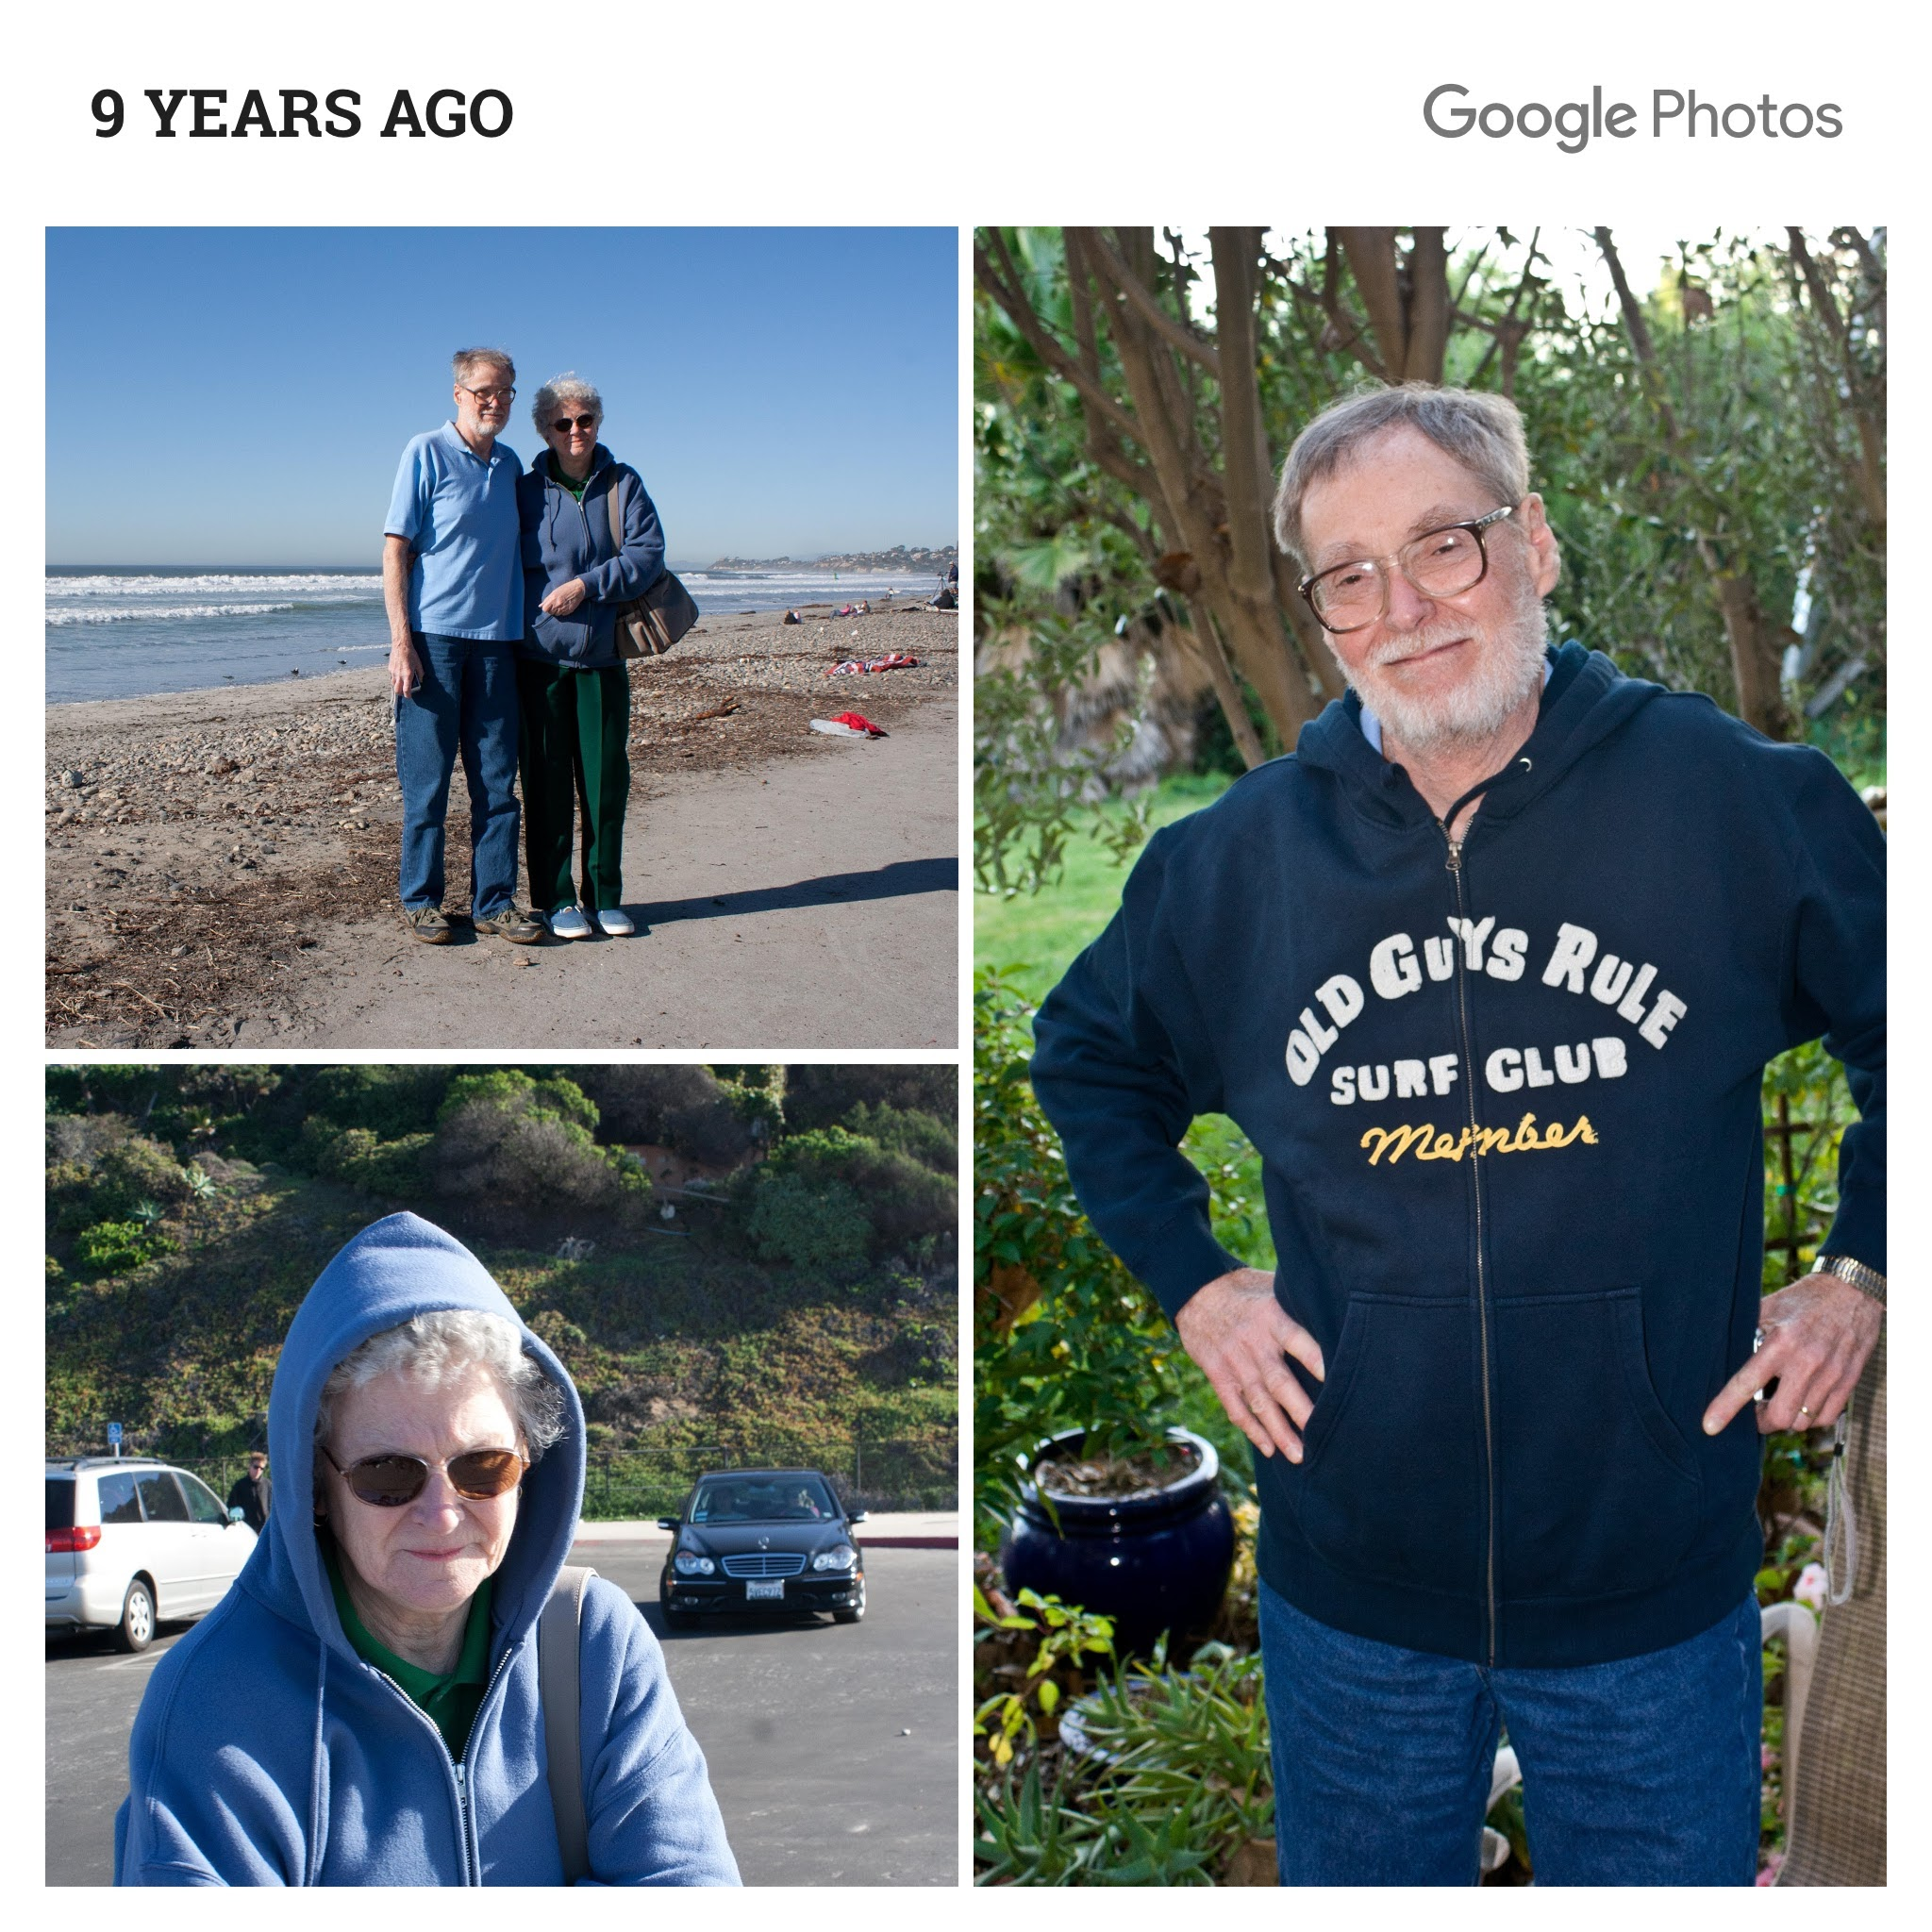 Google Photos – Rediscover This Day